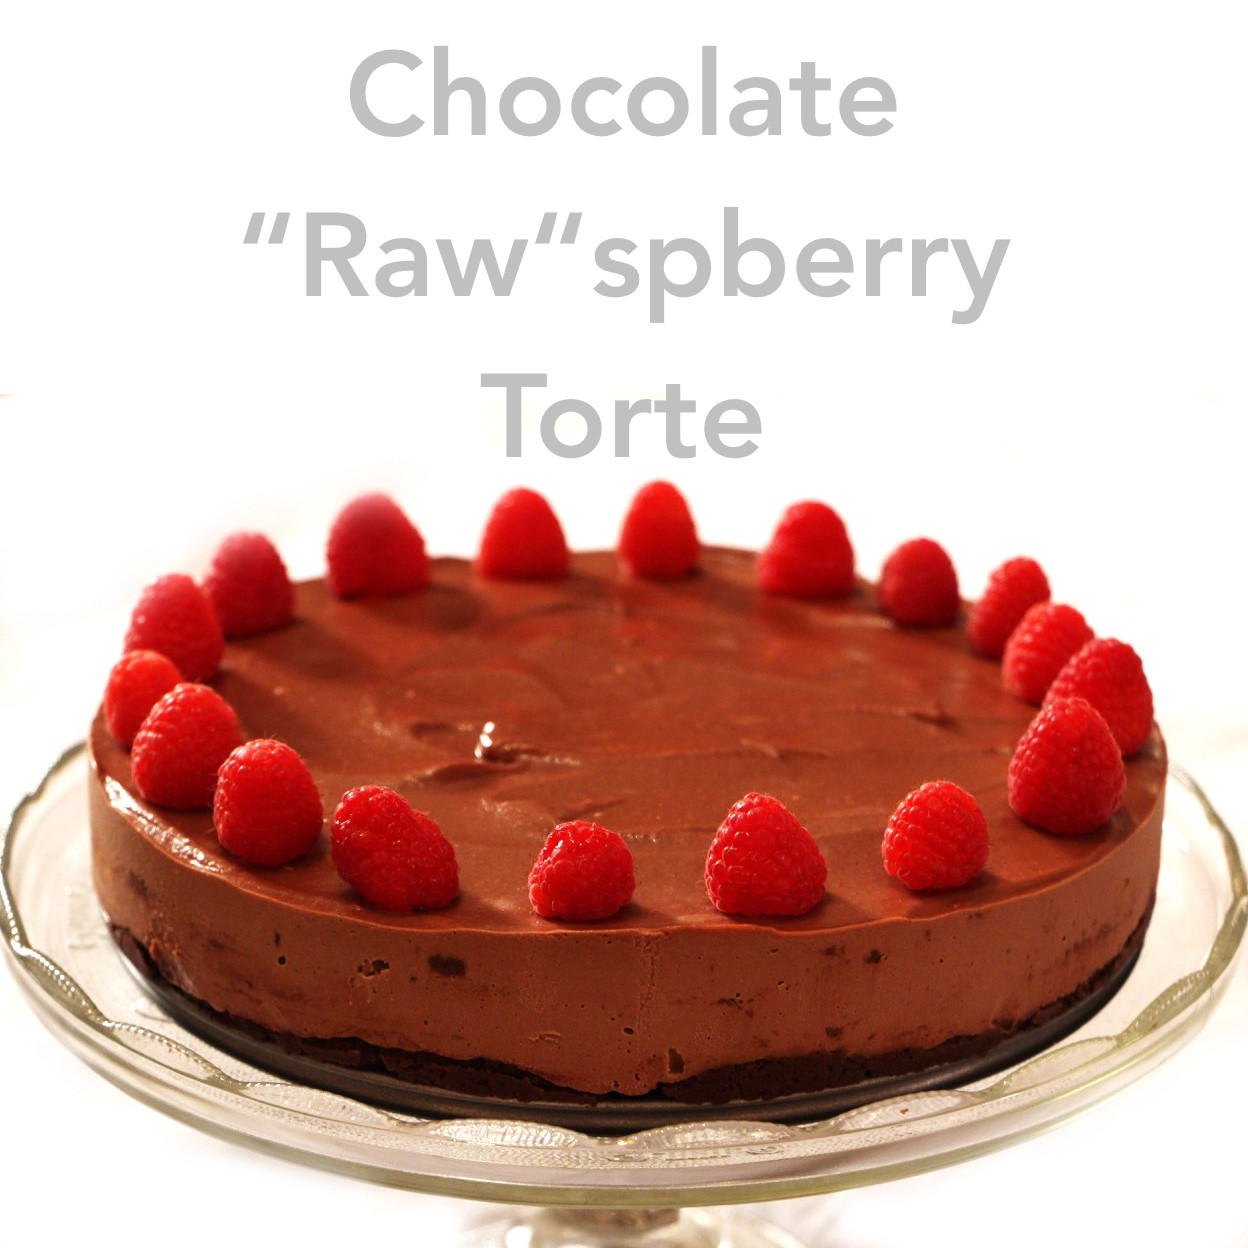 High speed recipes chocolate rawspberry torte living health this high speed recipe video was originally created by erin yeschin for the raw cooking show featured on the living health tv channel forumfinder Image collections